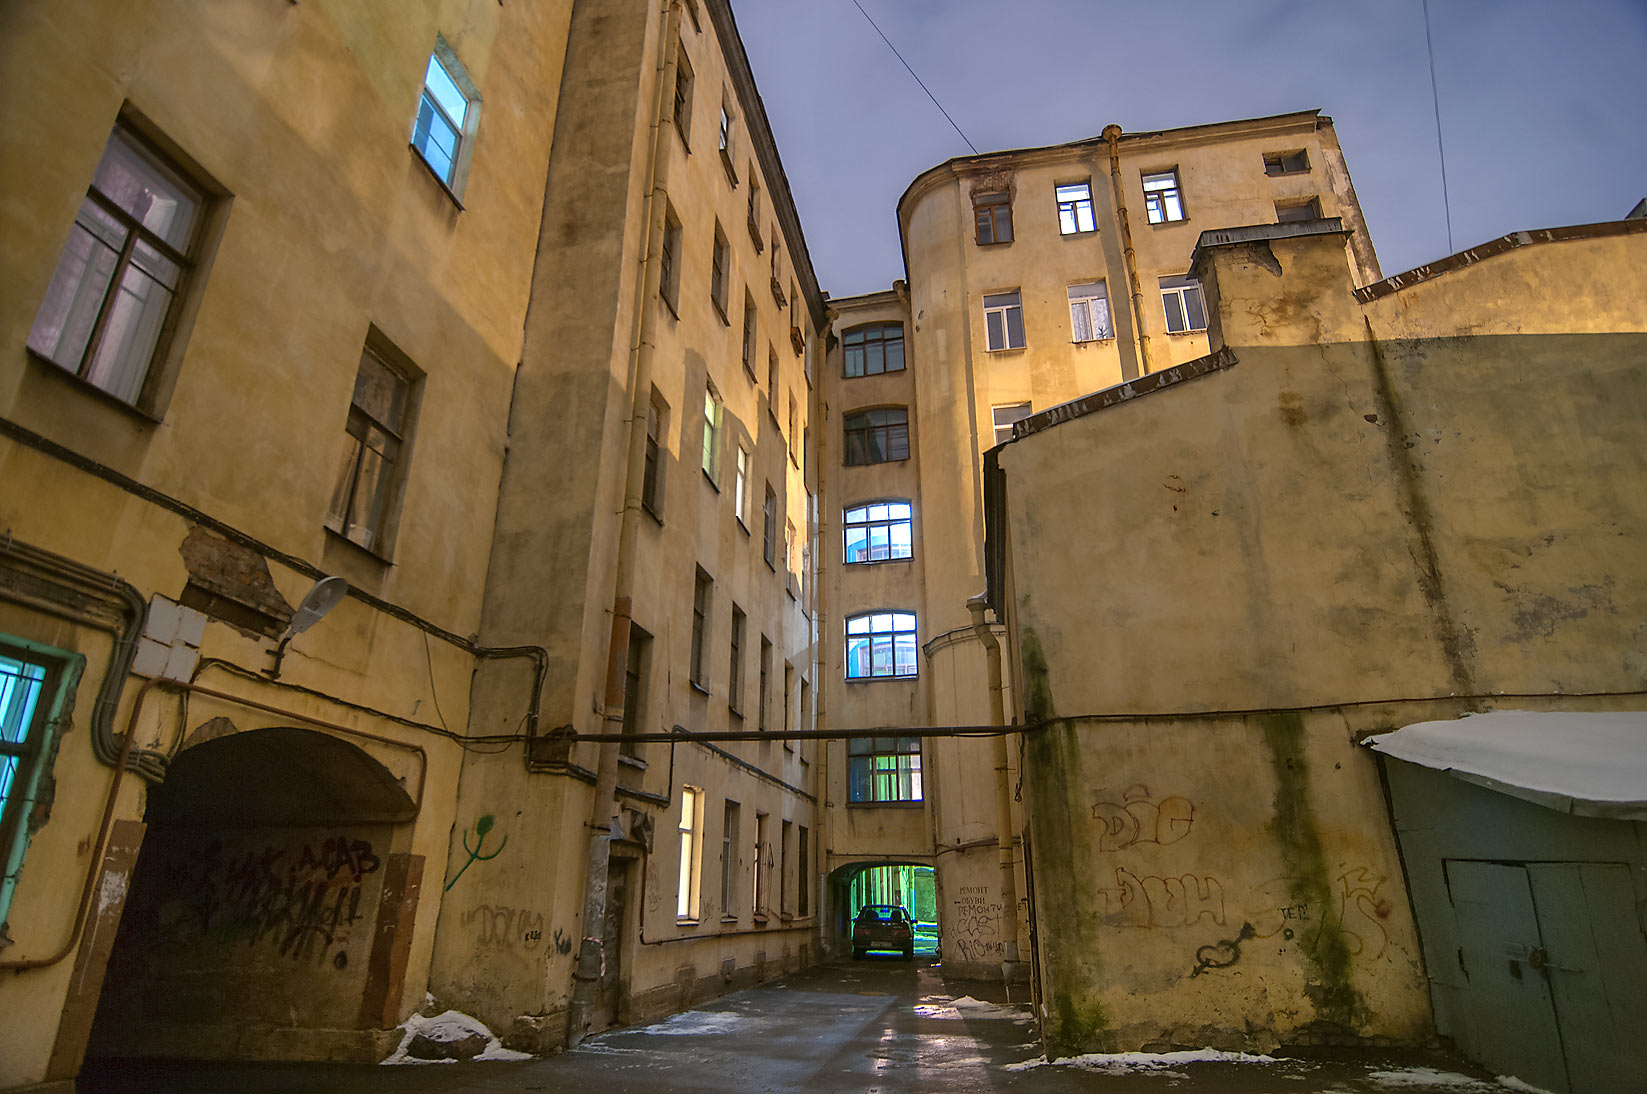 Passage between yards in Sementsy area. St.Petersburg, Russia